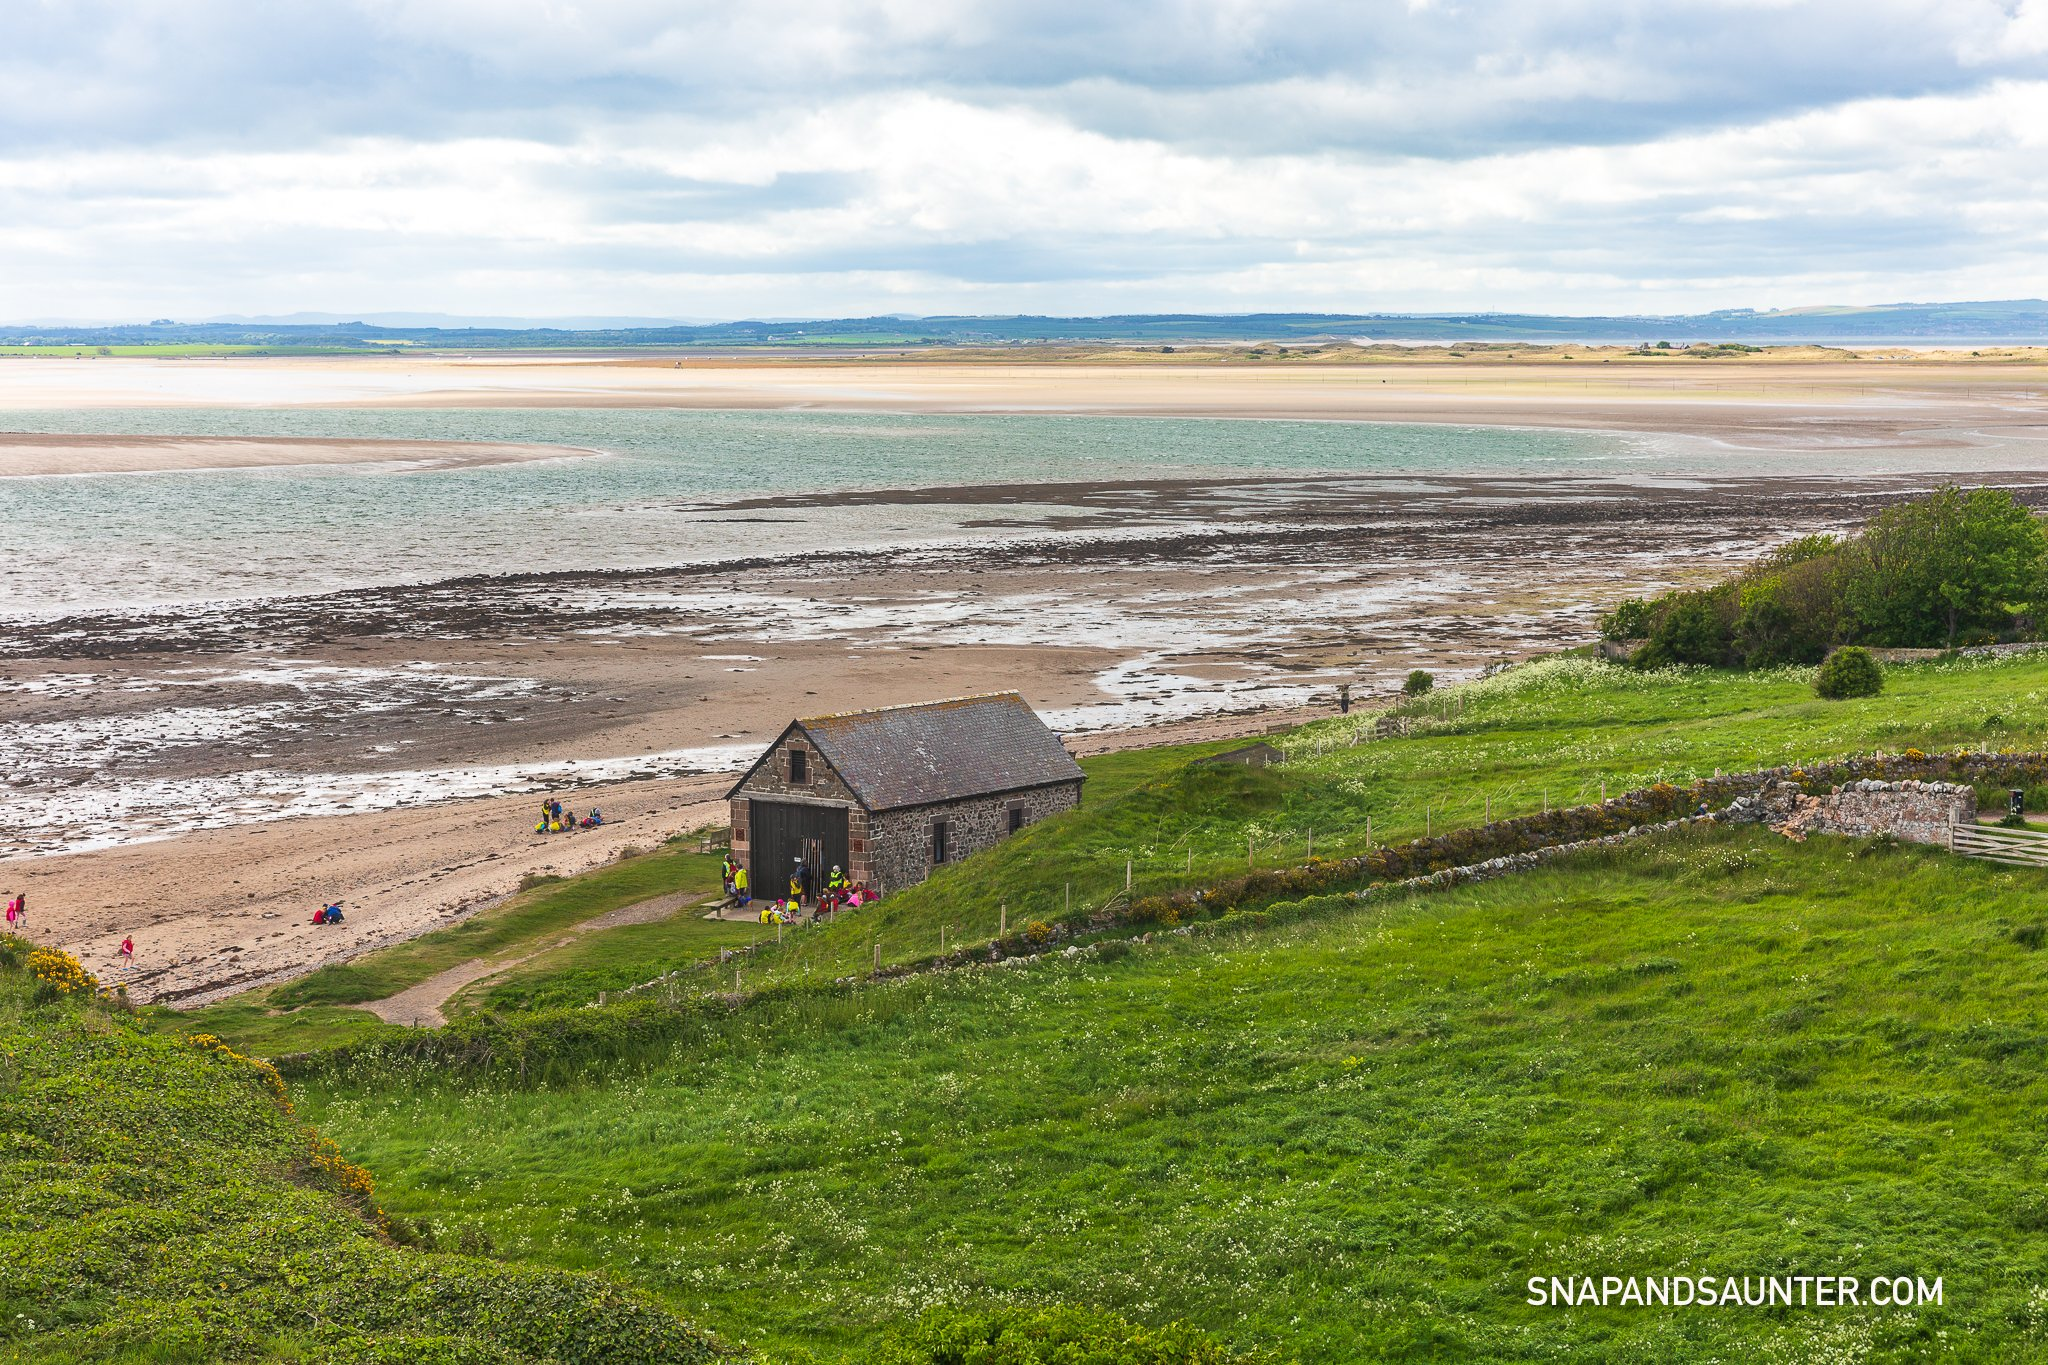 A view from the Lookout Tower on Holy Island in Northumberland